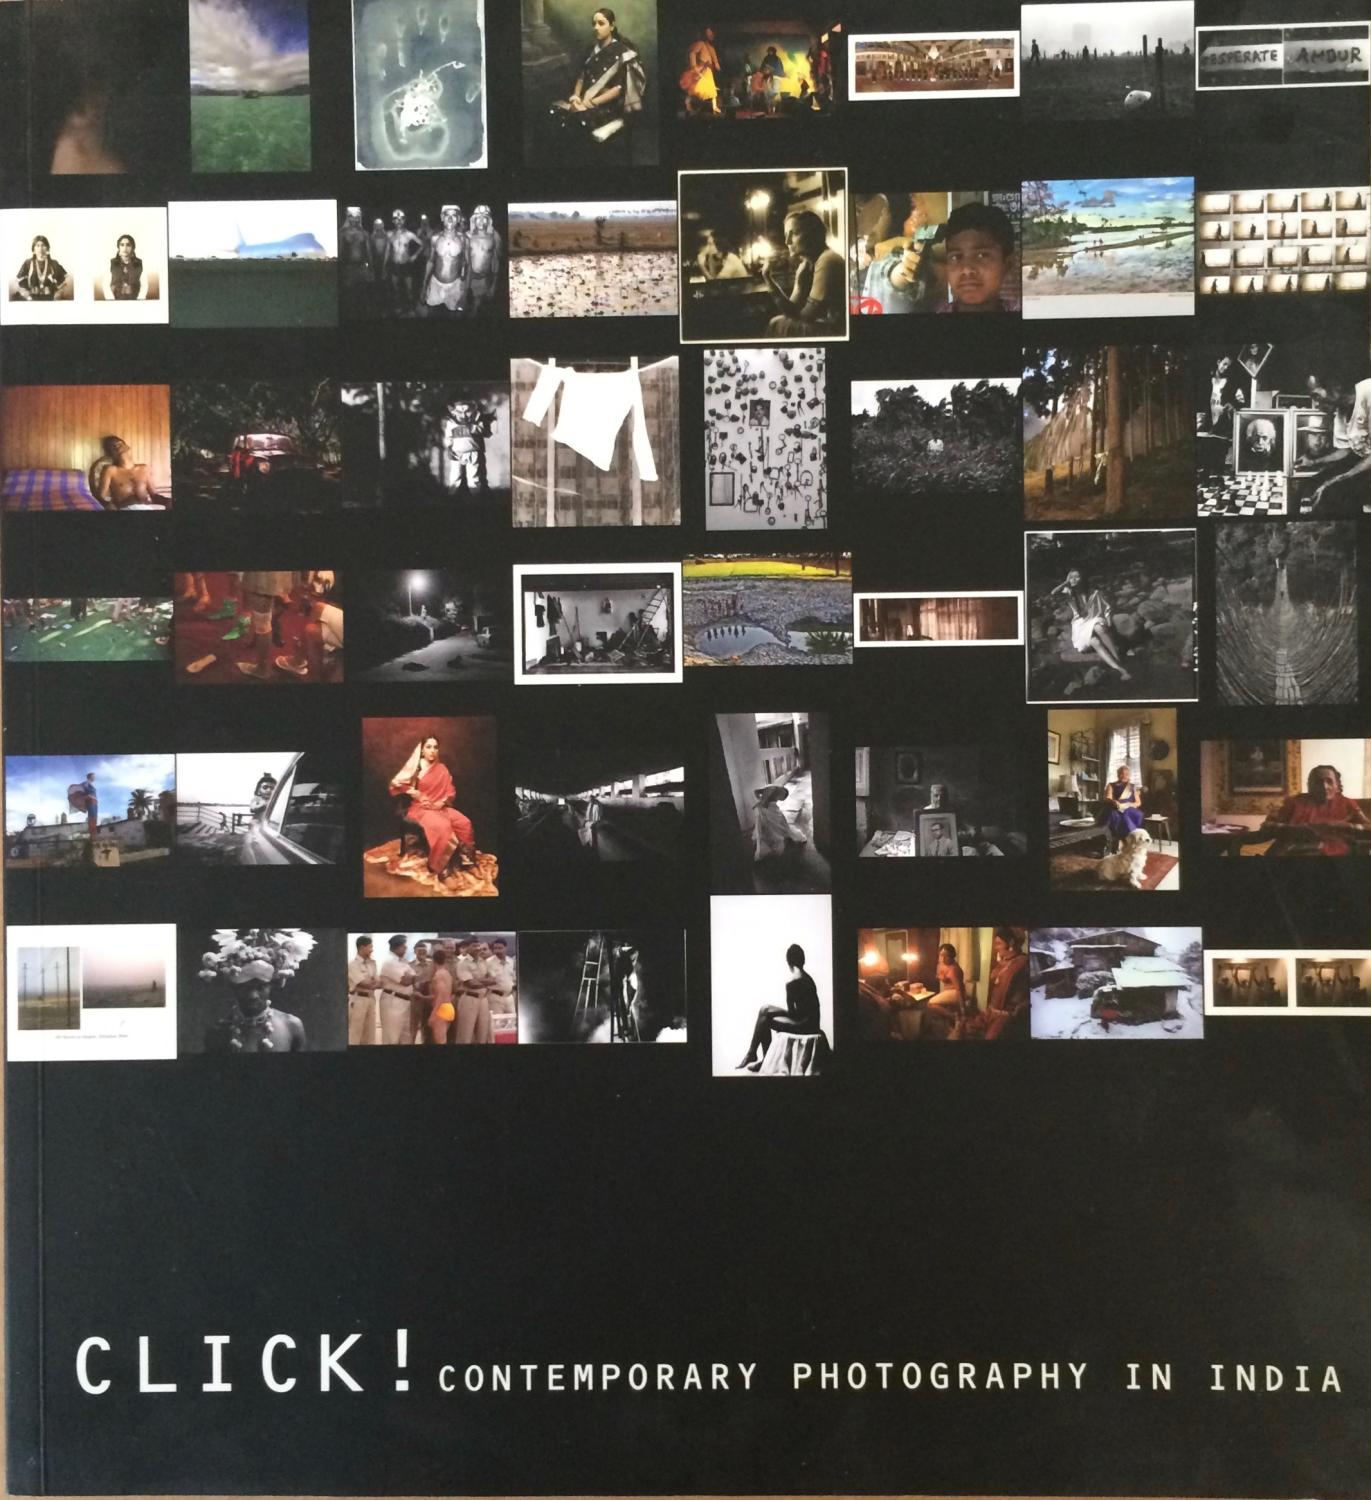 2008: Click! Contemporary Photography in India